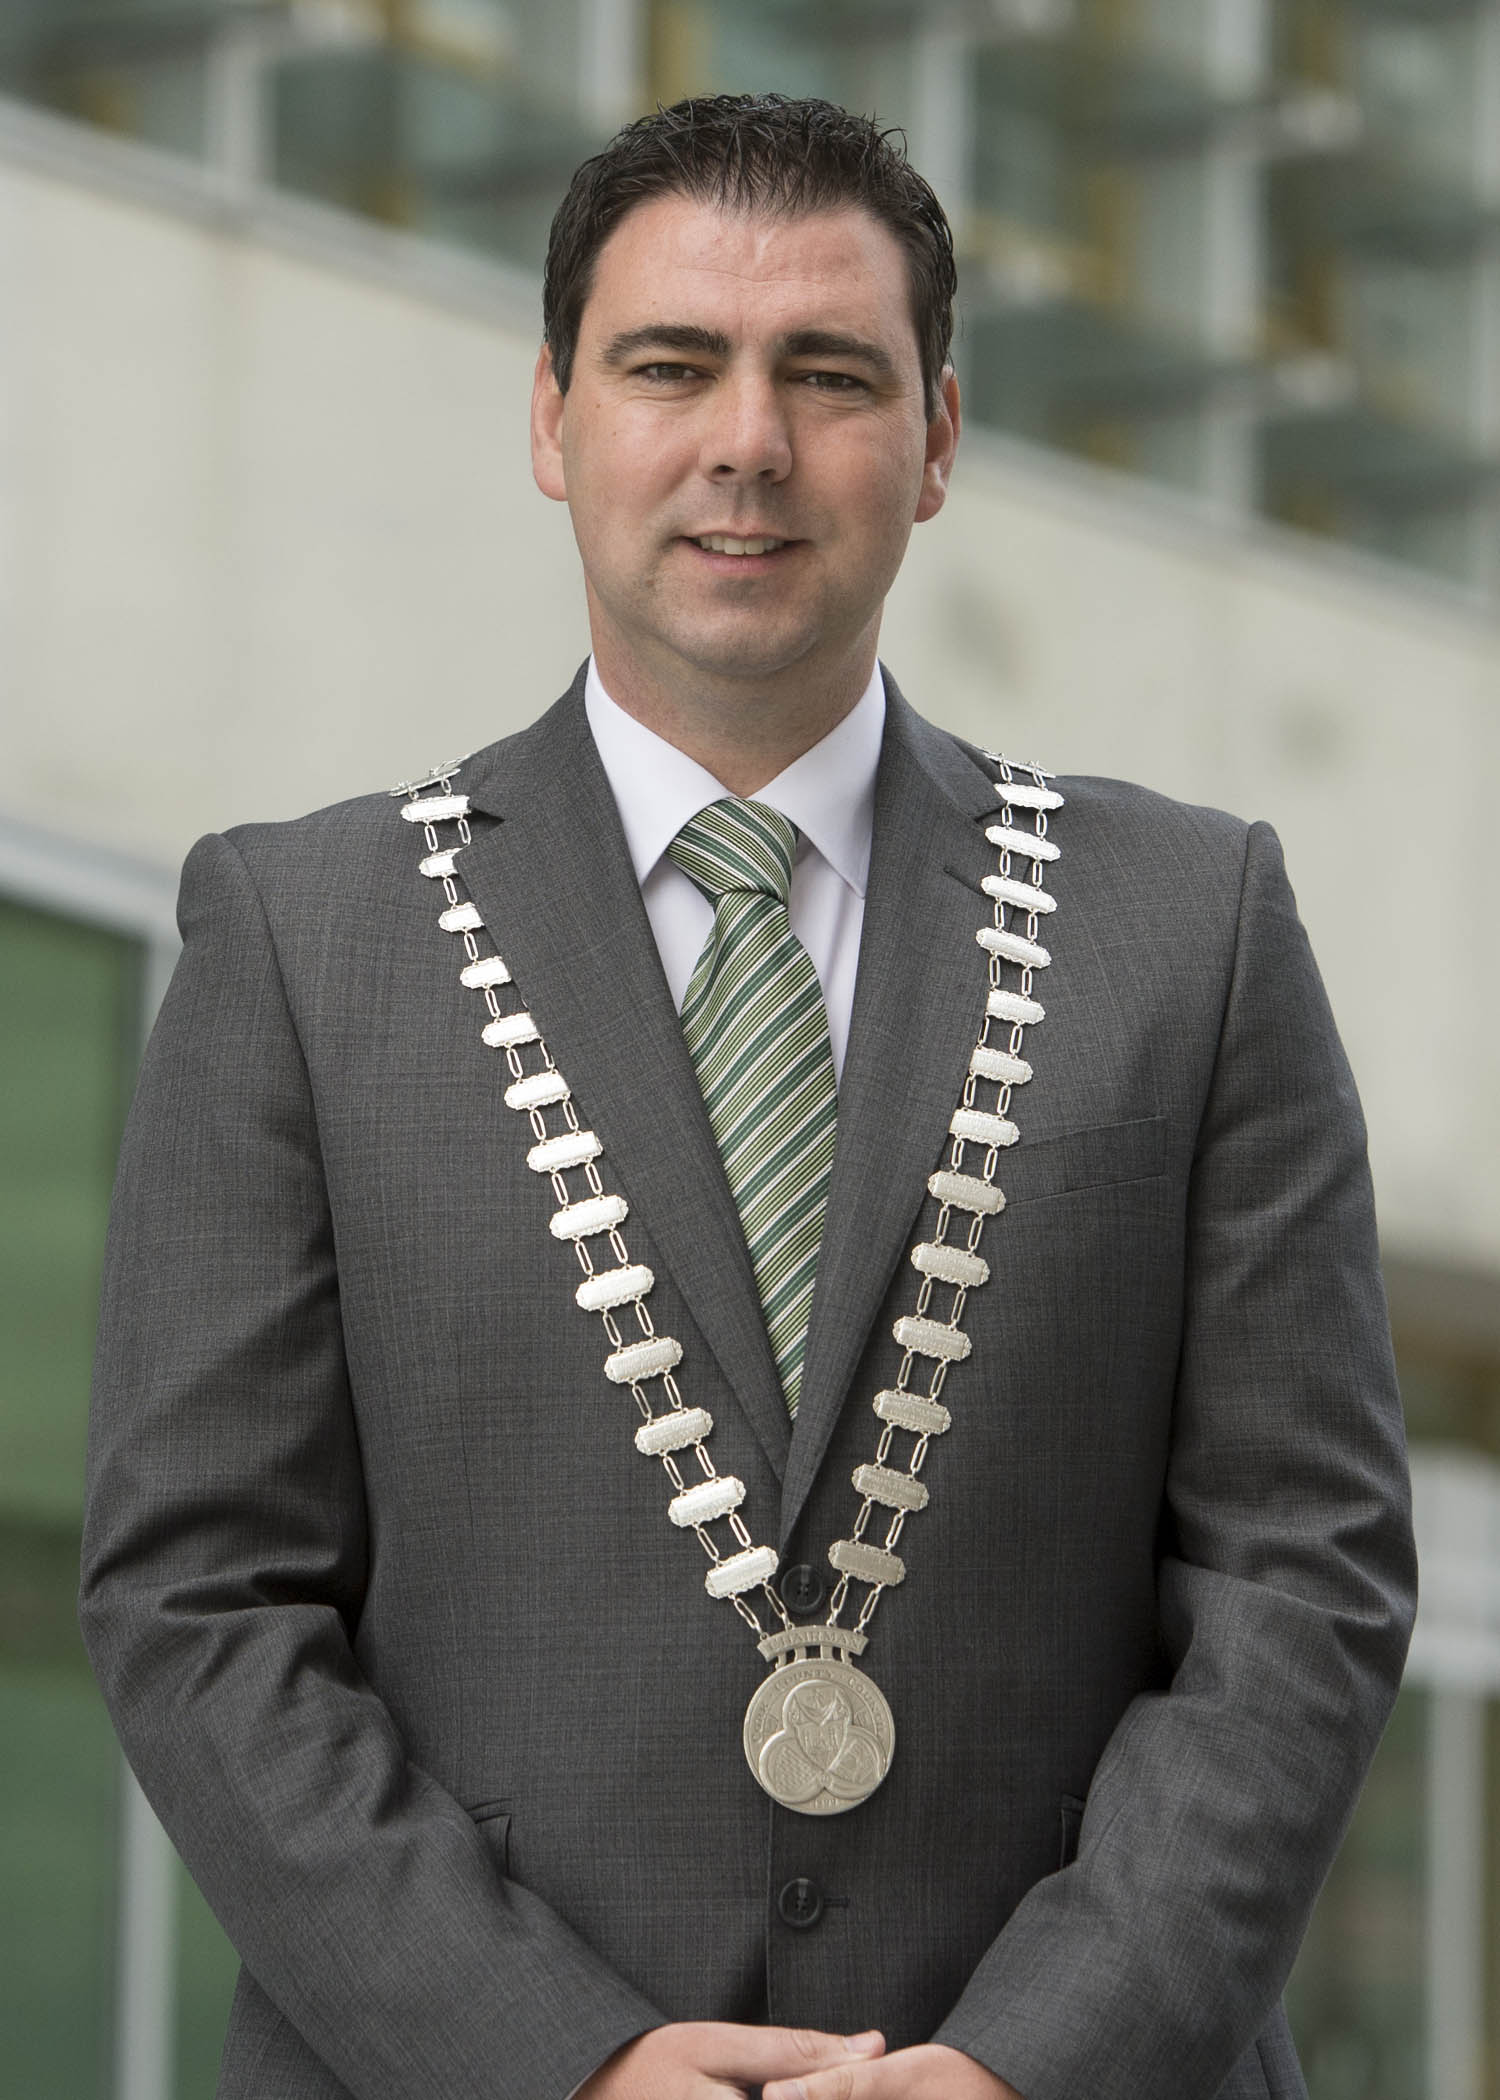 Mayor of County Cork connects with the people of Cork via Facebook and Twitter